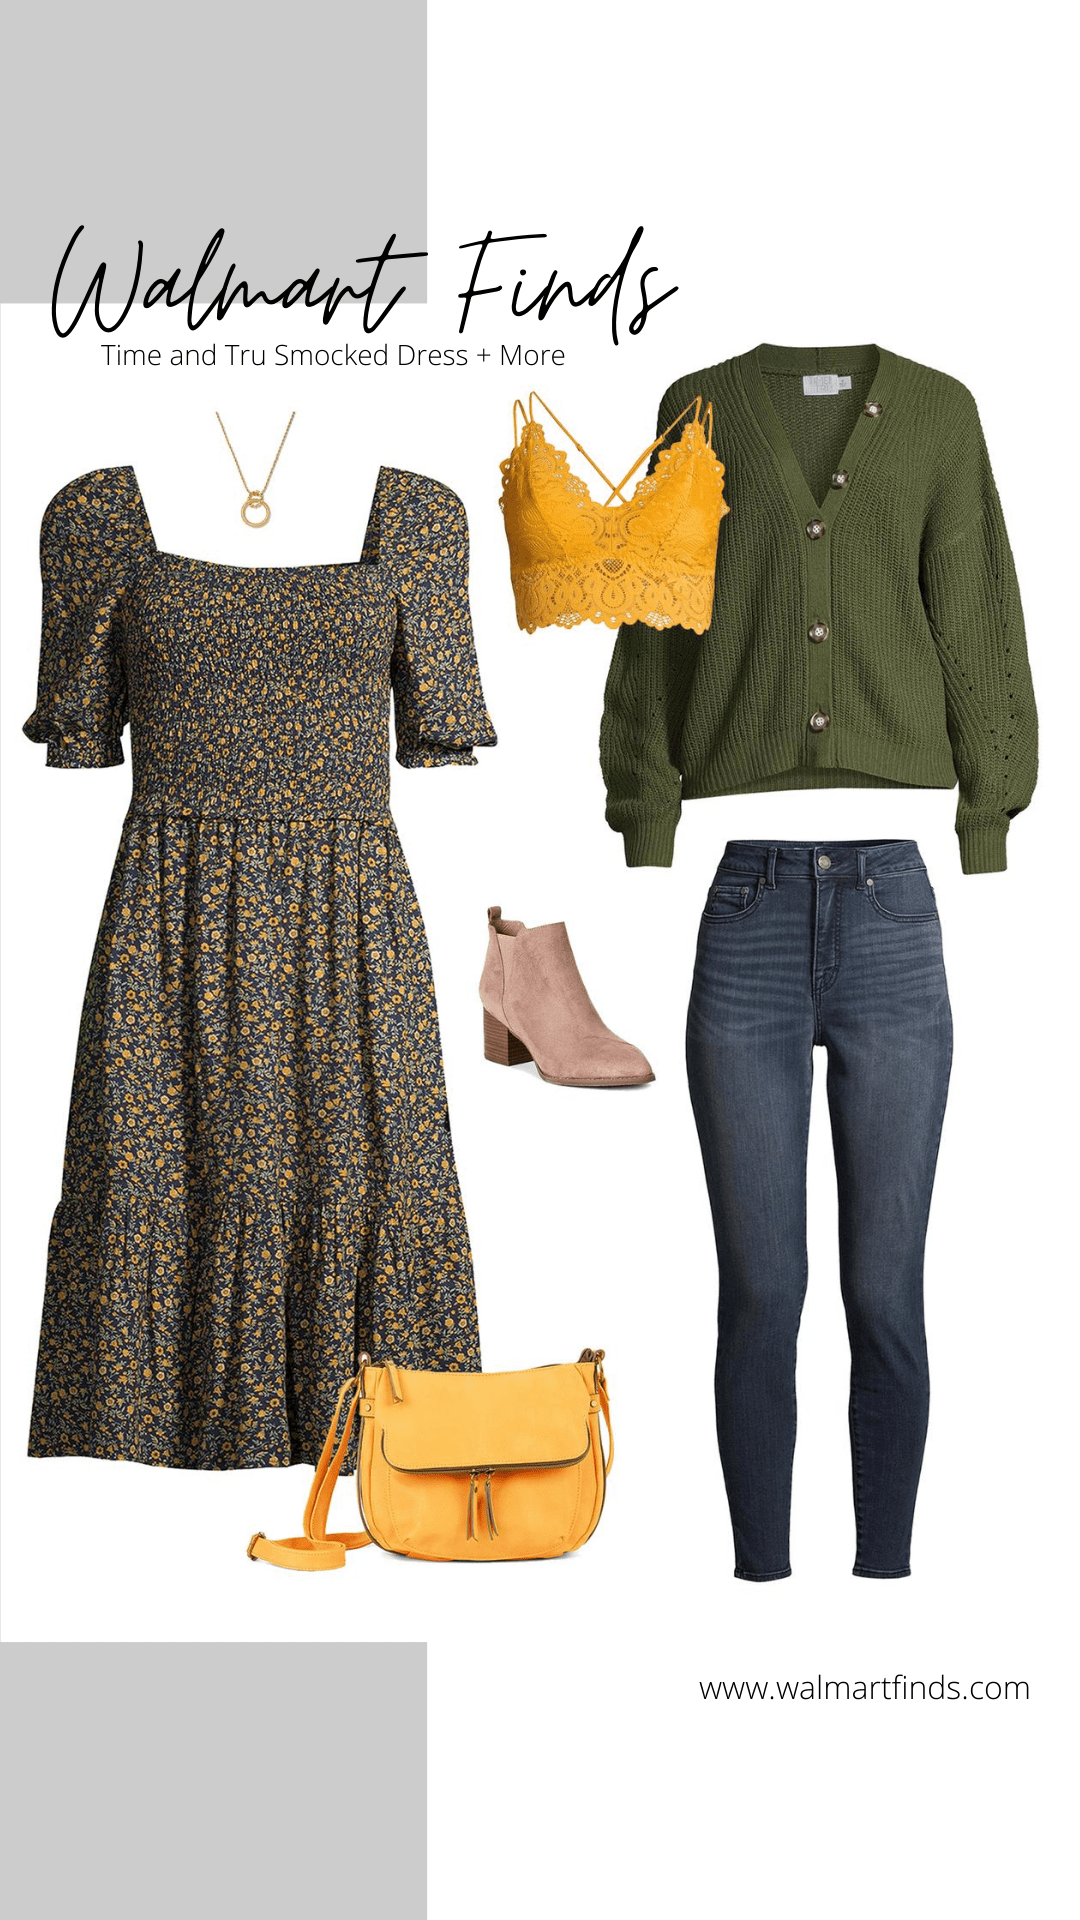 Time and Tru Smocked Dress, boyfriend cardigan, skinny jeans, lace bralette and more